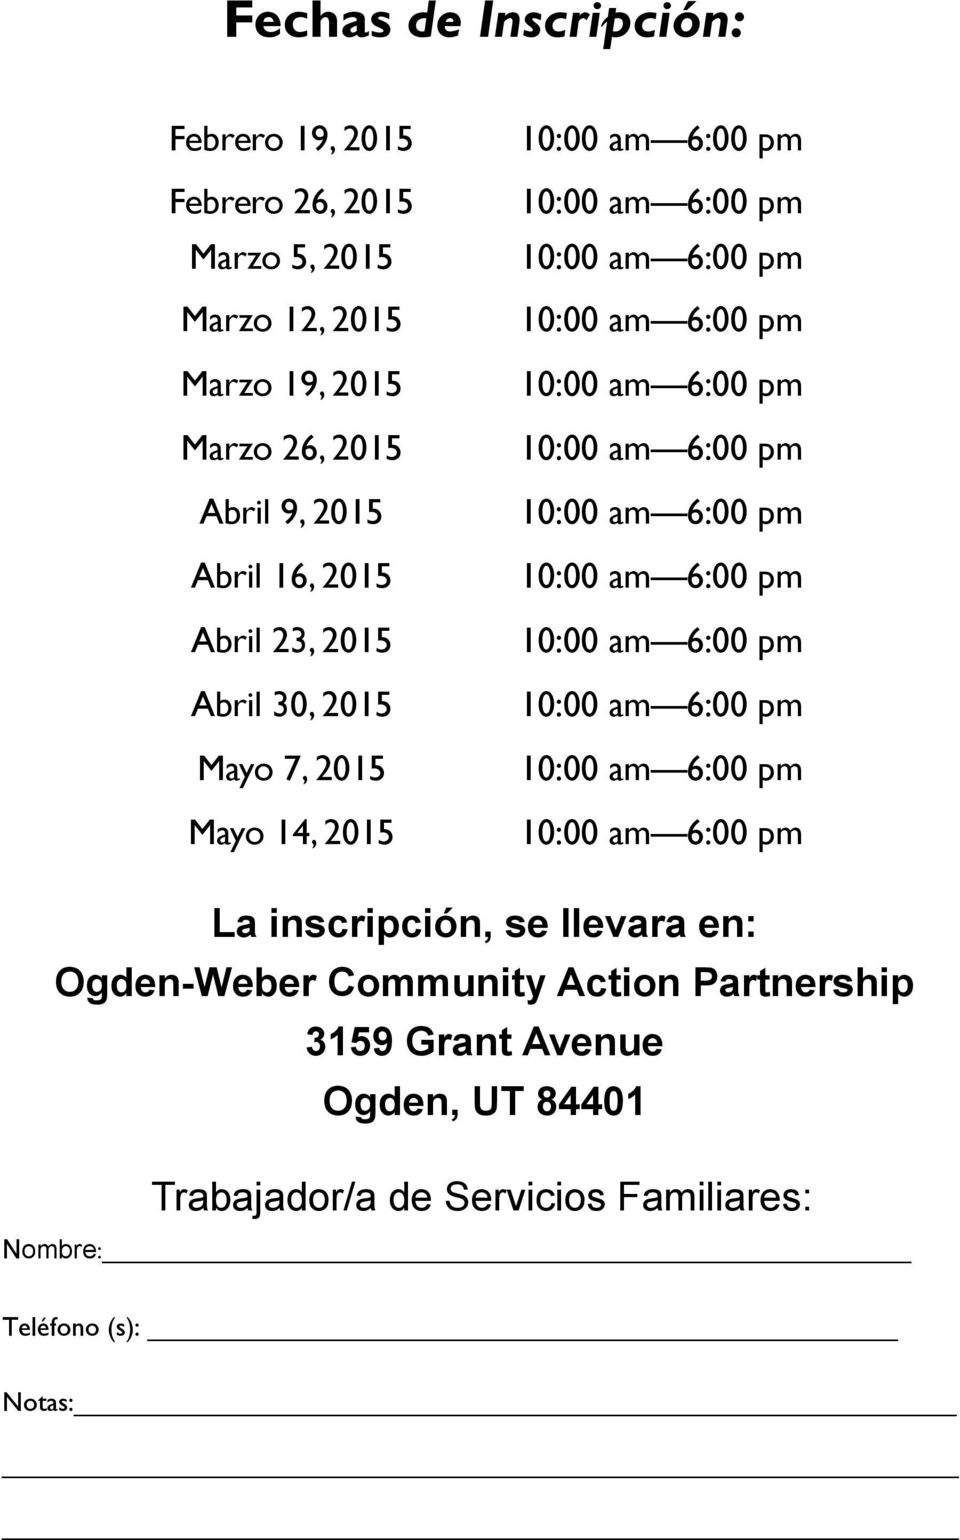 2015 Mayo 14, 2015 La inscripción, se llevara en: Ogden-Weber Community Action Partnership